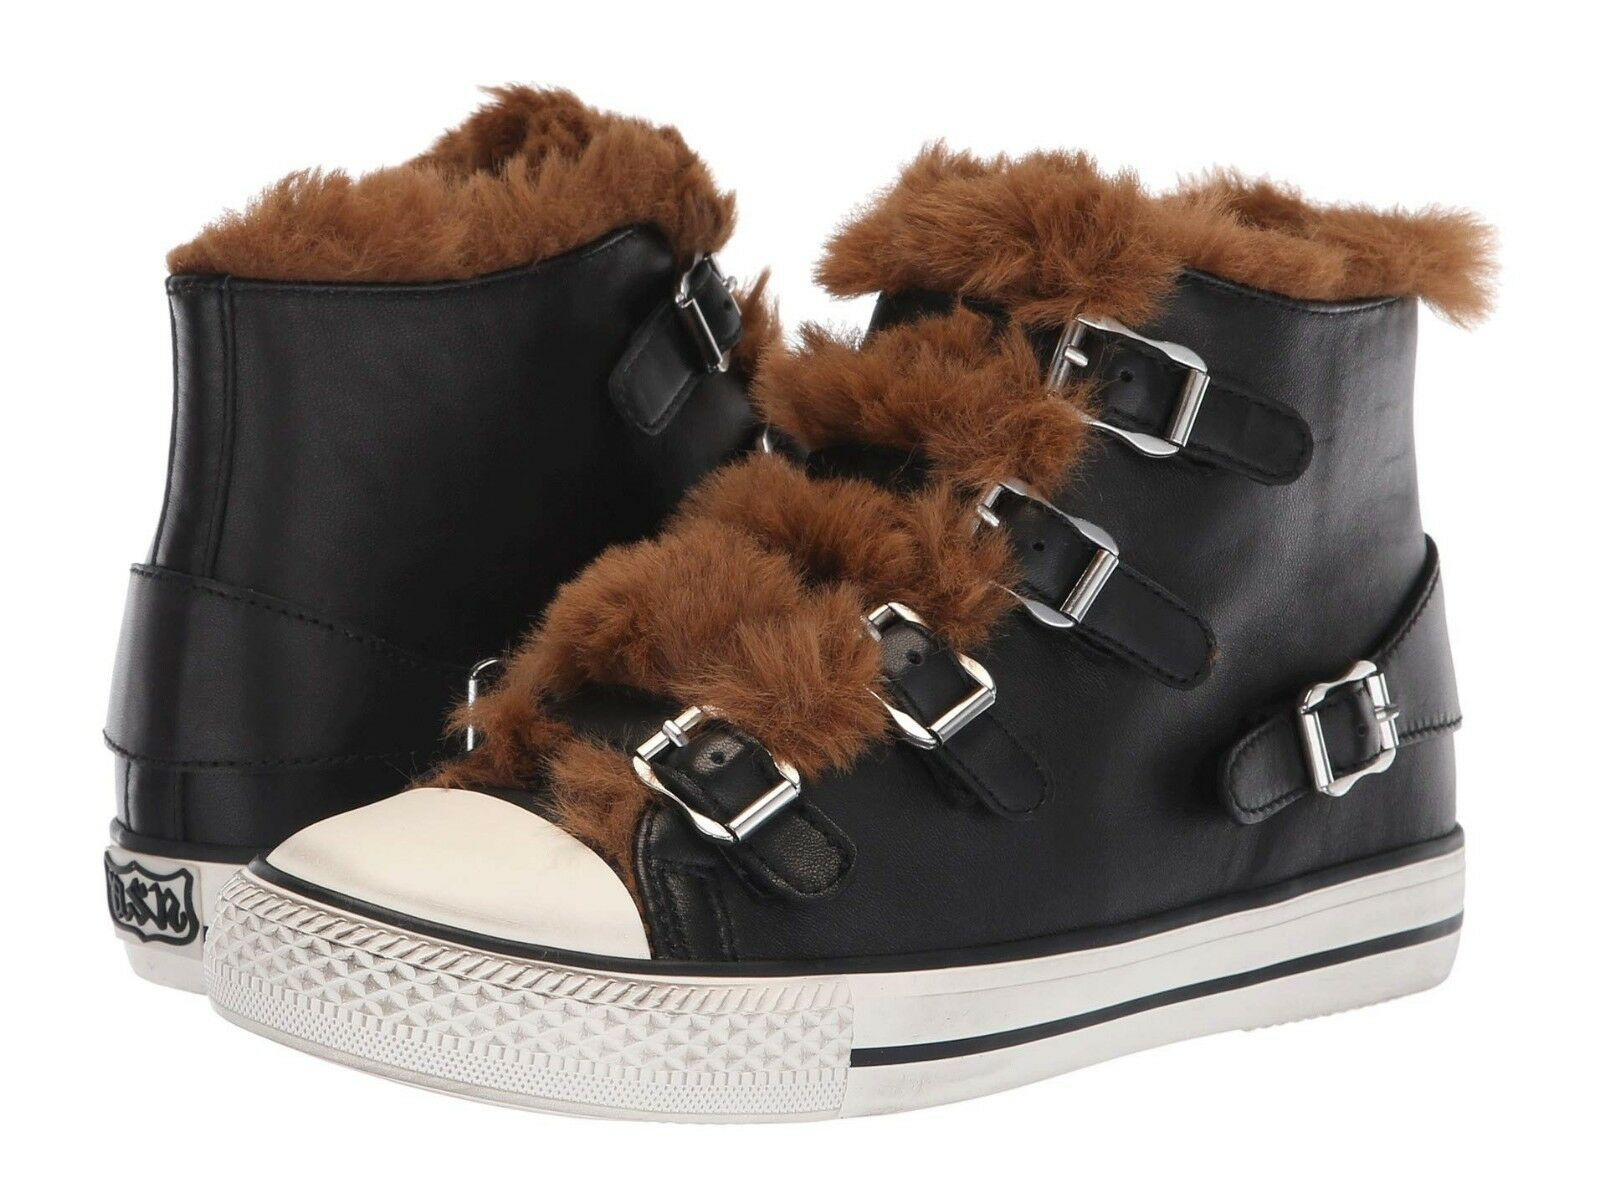 ASH Brand Women's Women's Women's Fashion Valko Leather Soft Faux Fur Sneakers shoes Buckle Boot dece31